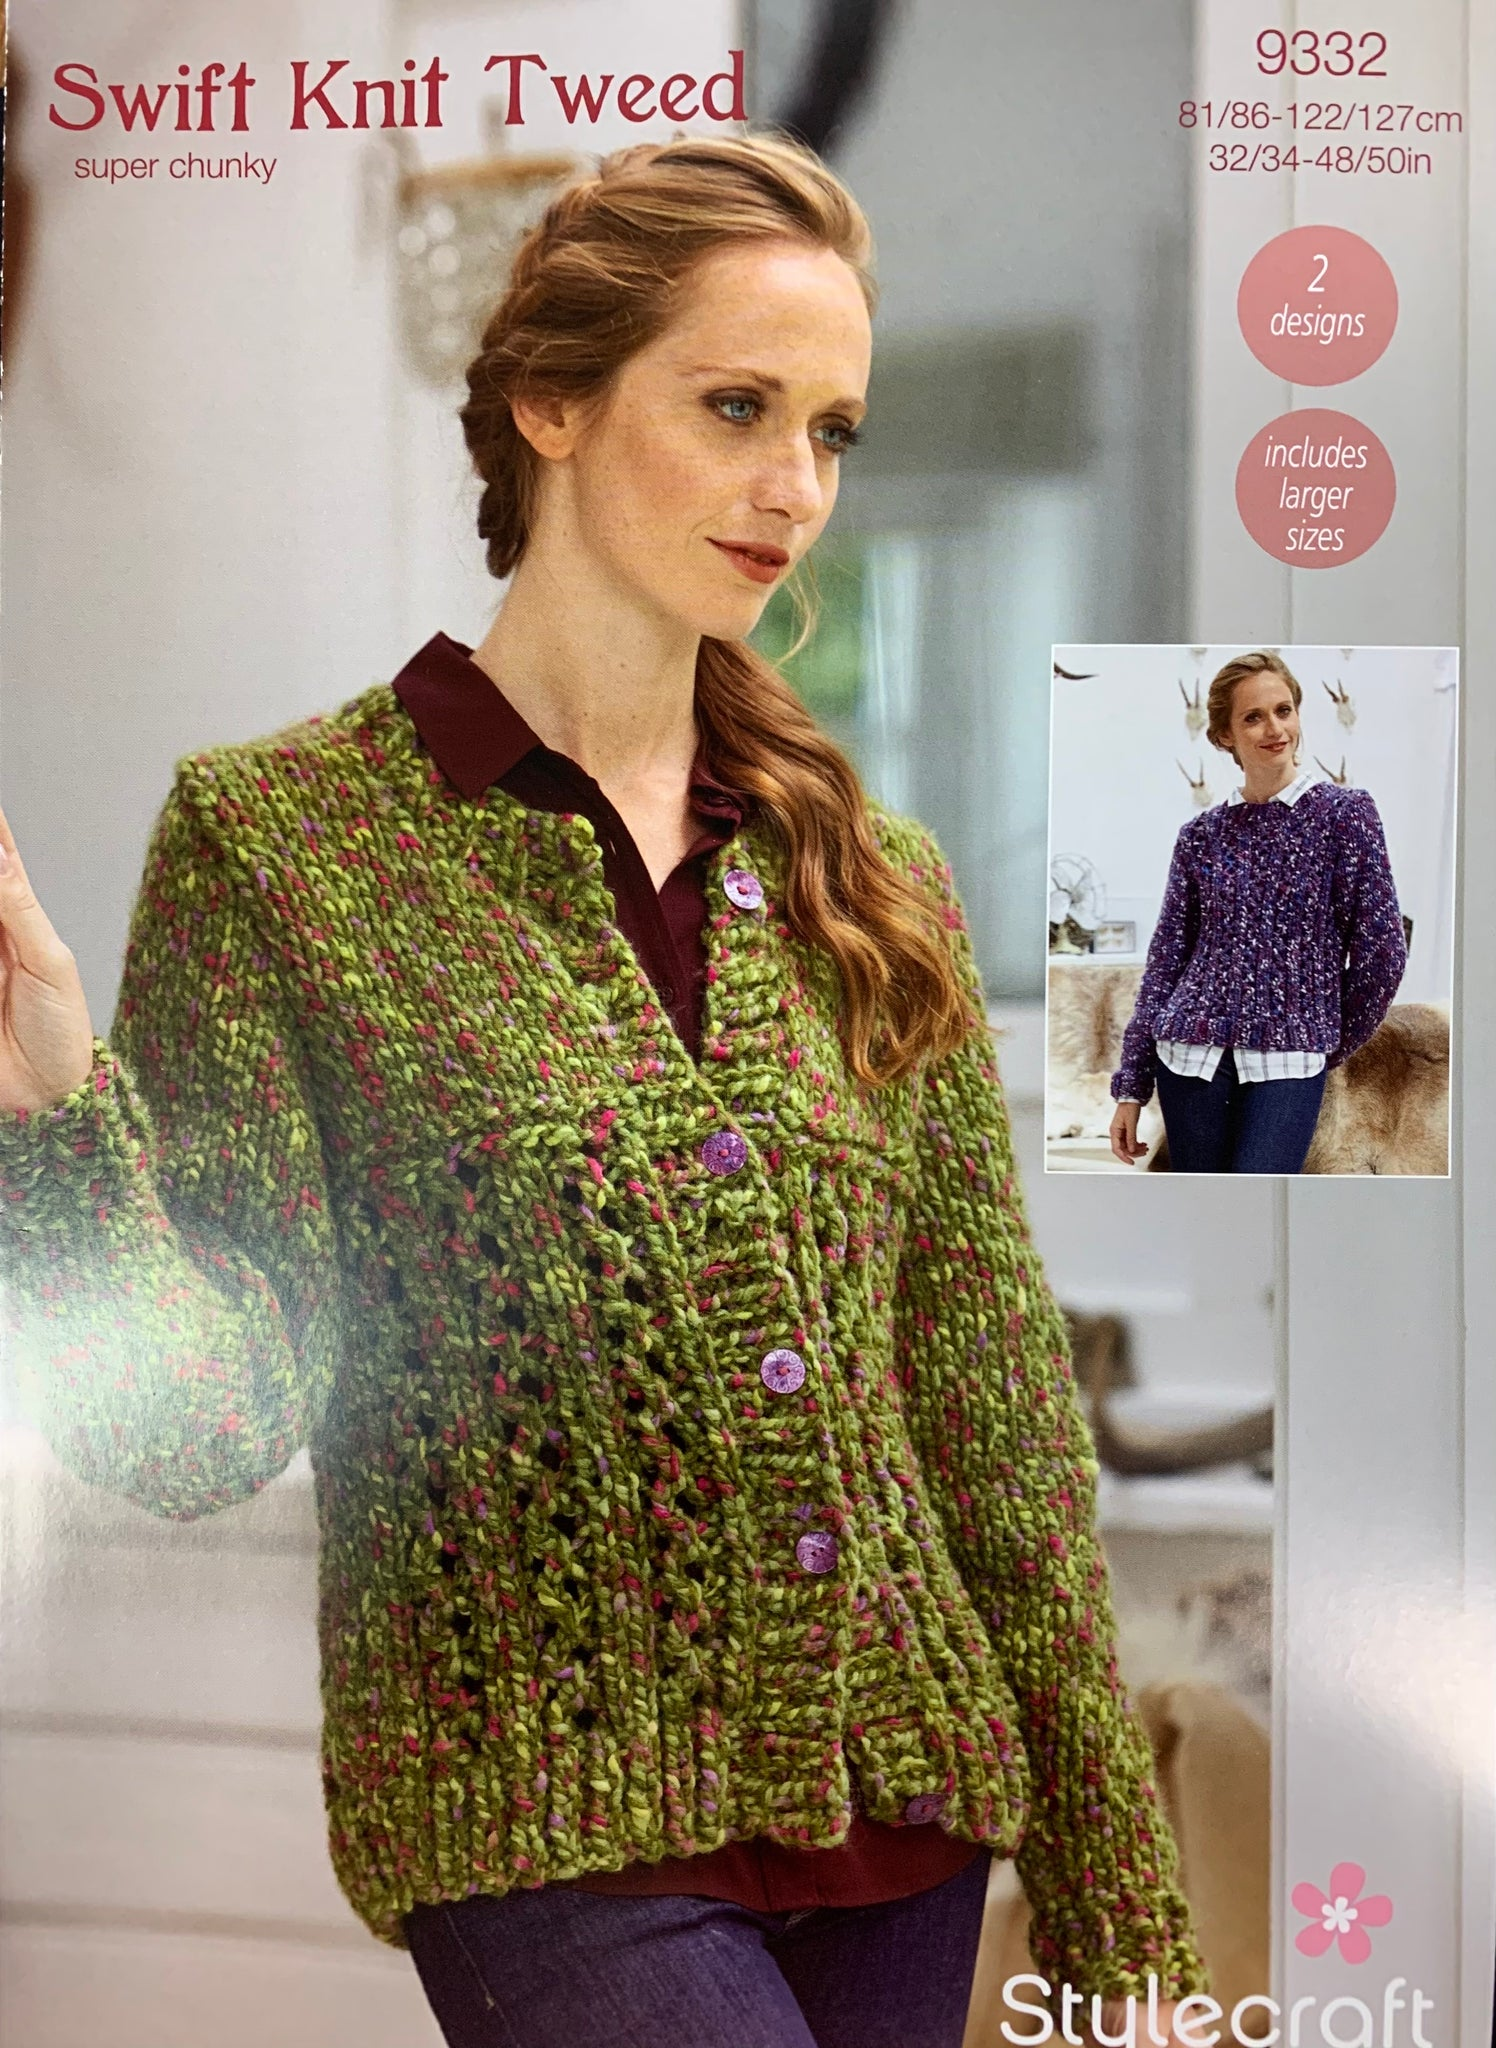 9332 Stylecraft Swift Knit Tweed super chunky ladies crew neck sweater and cardigan knitting pattern